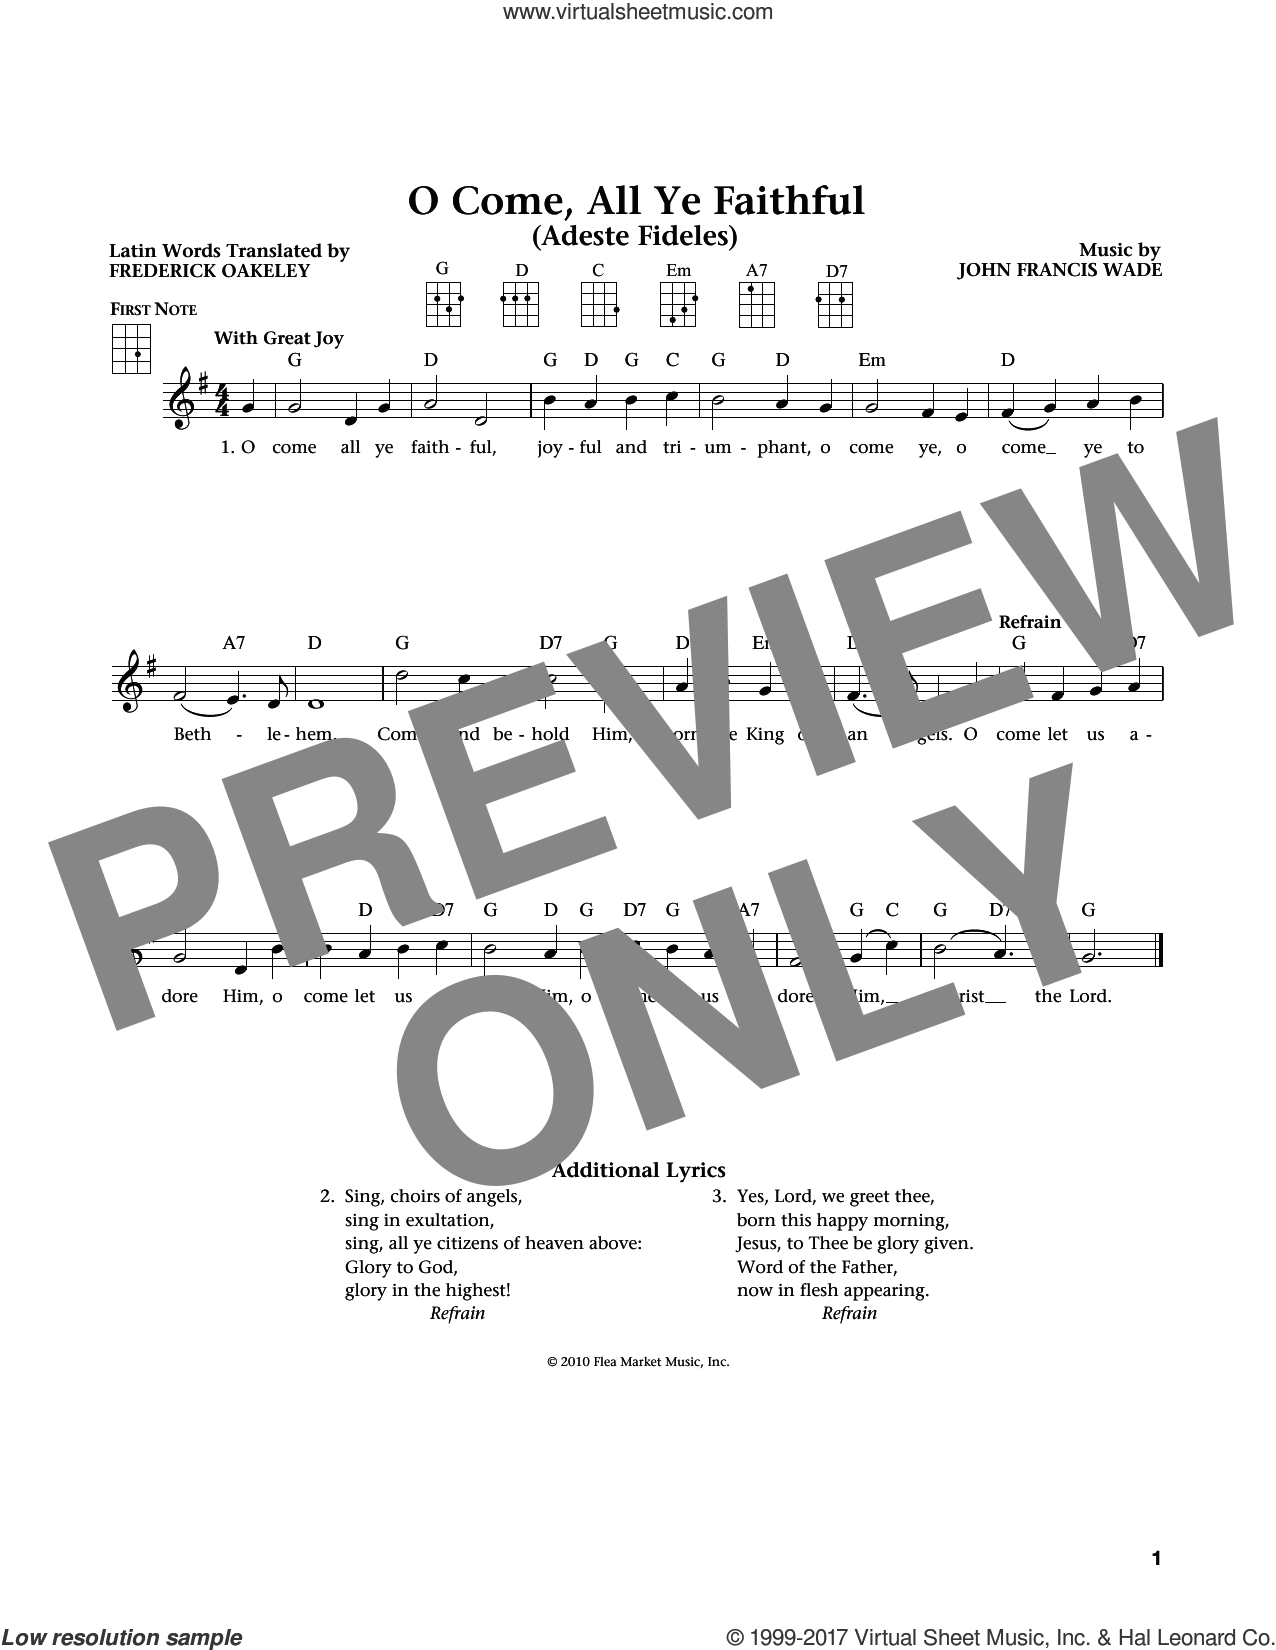 O Come, All Ye Faithful (from The Daily Ukulele) (arr. Liz and Jim Beloff) sheet music for ukulele by John Francis Wade, Jim Beloff, Liz Beloff and Frederick Oakeley (English), intermediate skill level